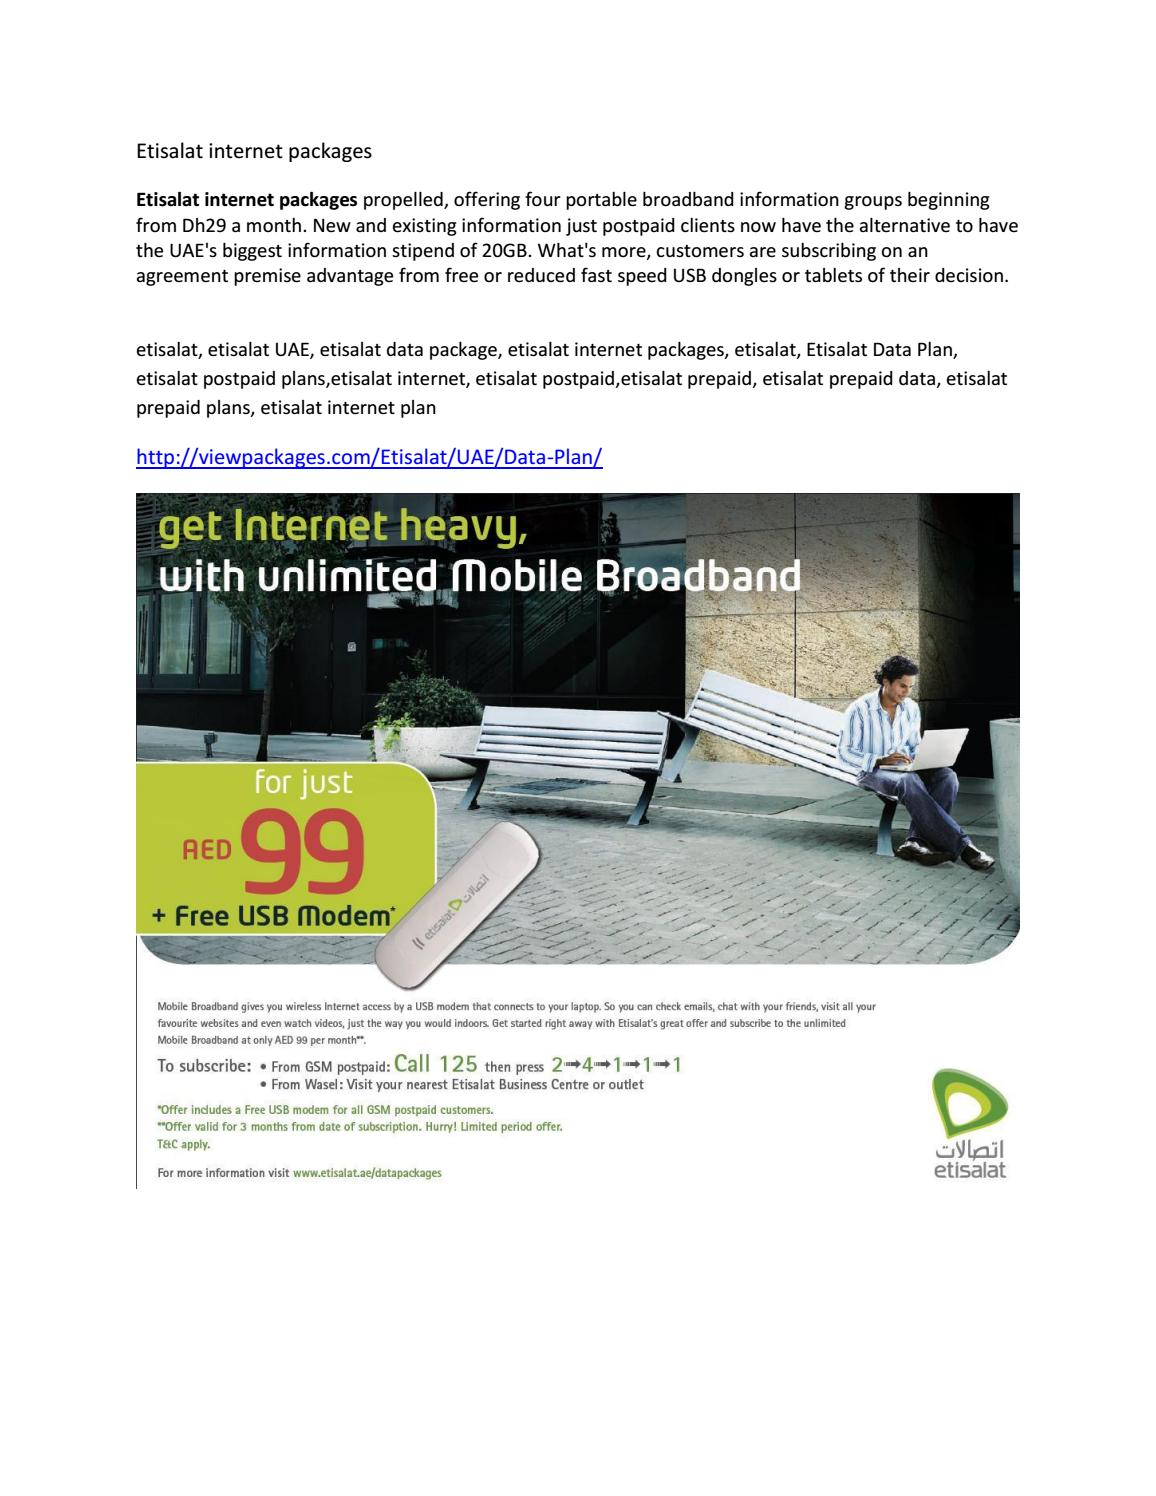 Etisalat internet packages by viewpackages - issuu